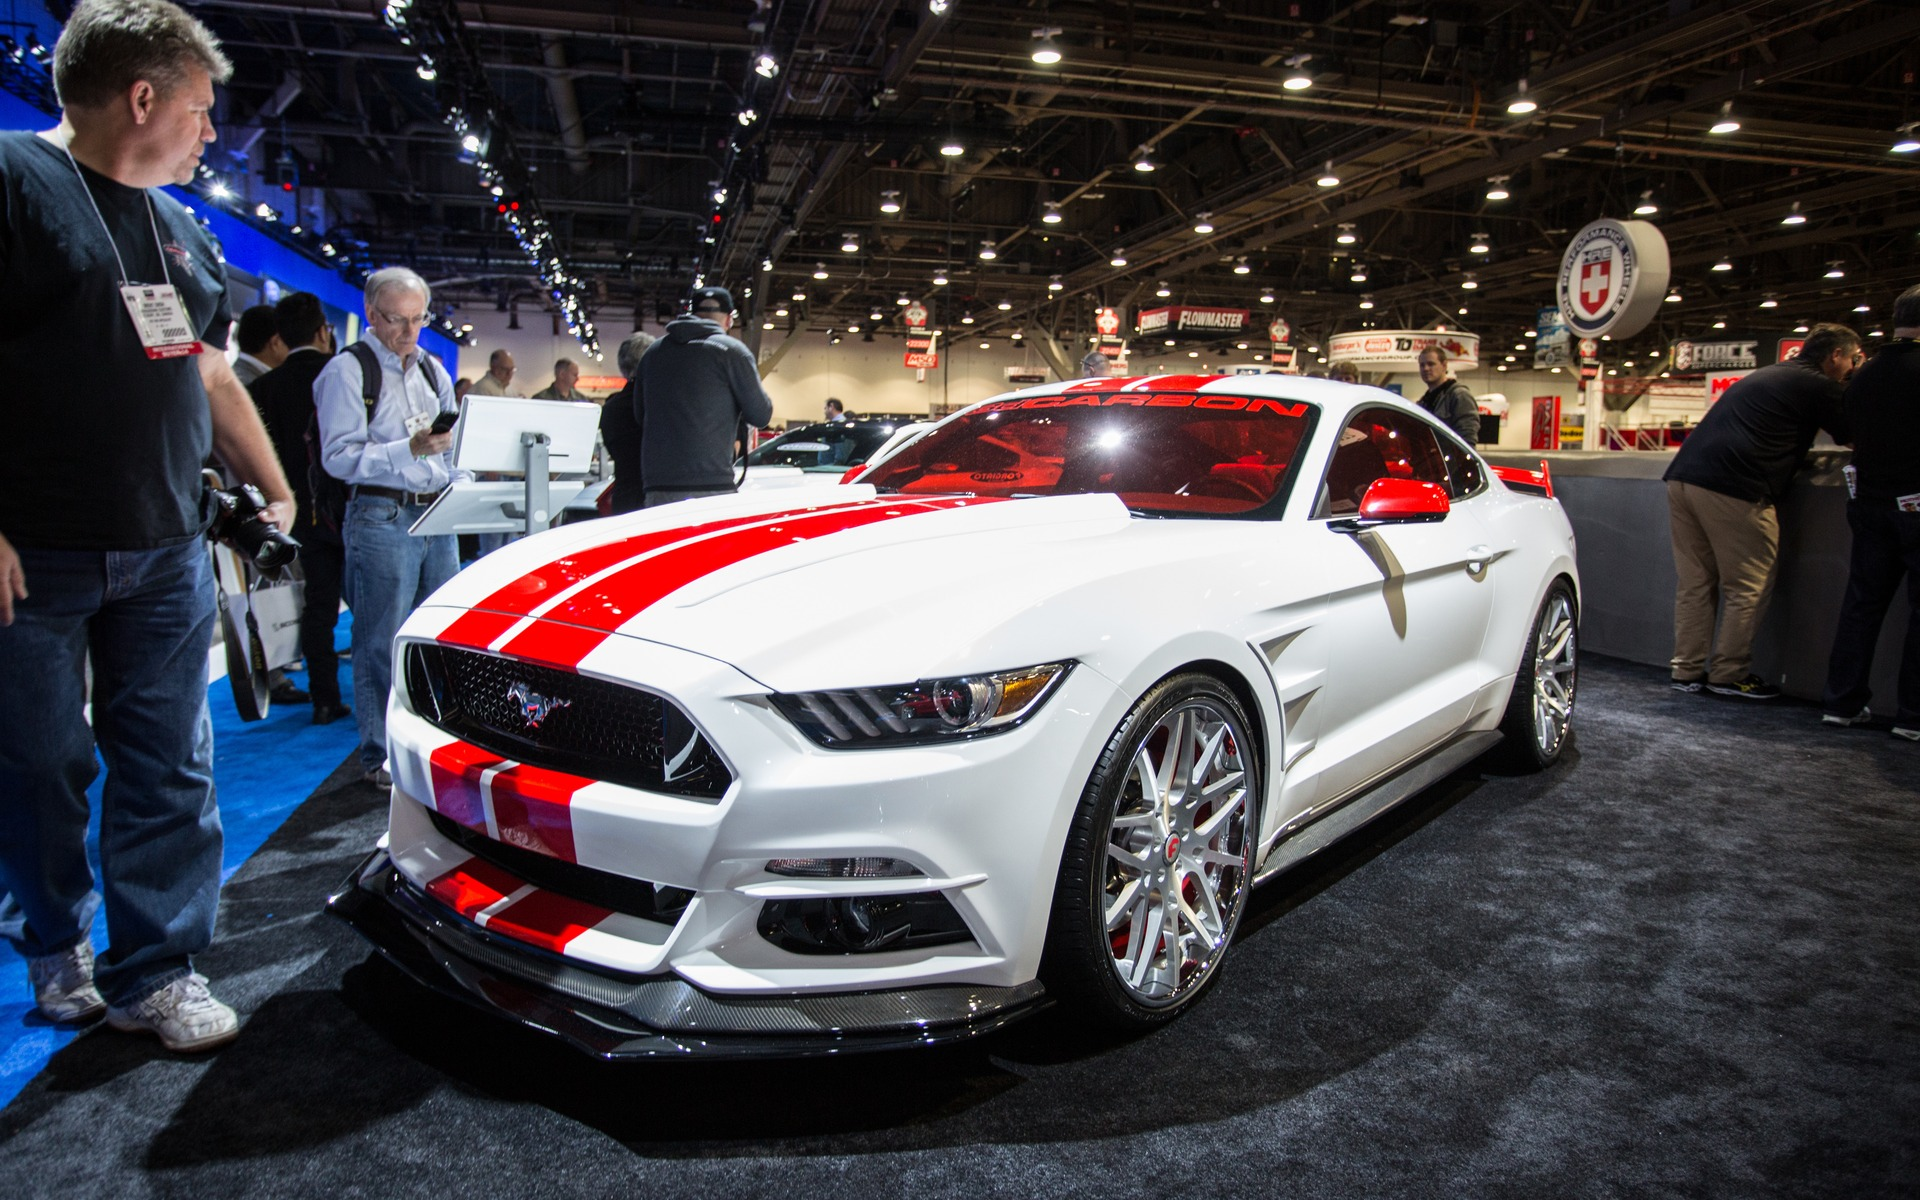 2014 Sema Show\'s Best Mustang - 15/41